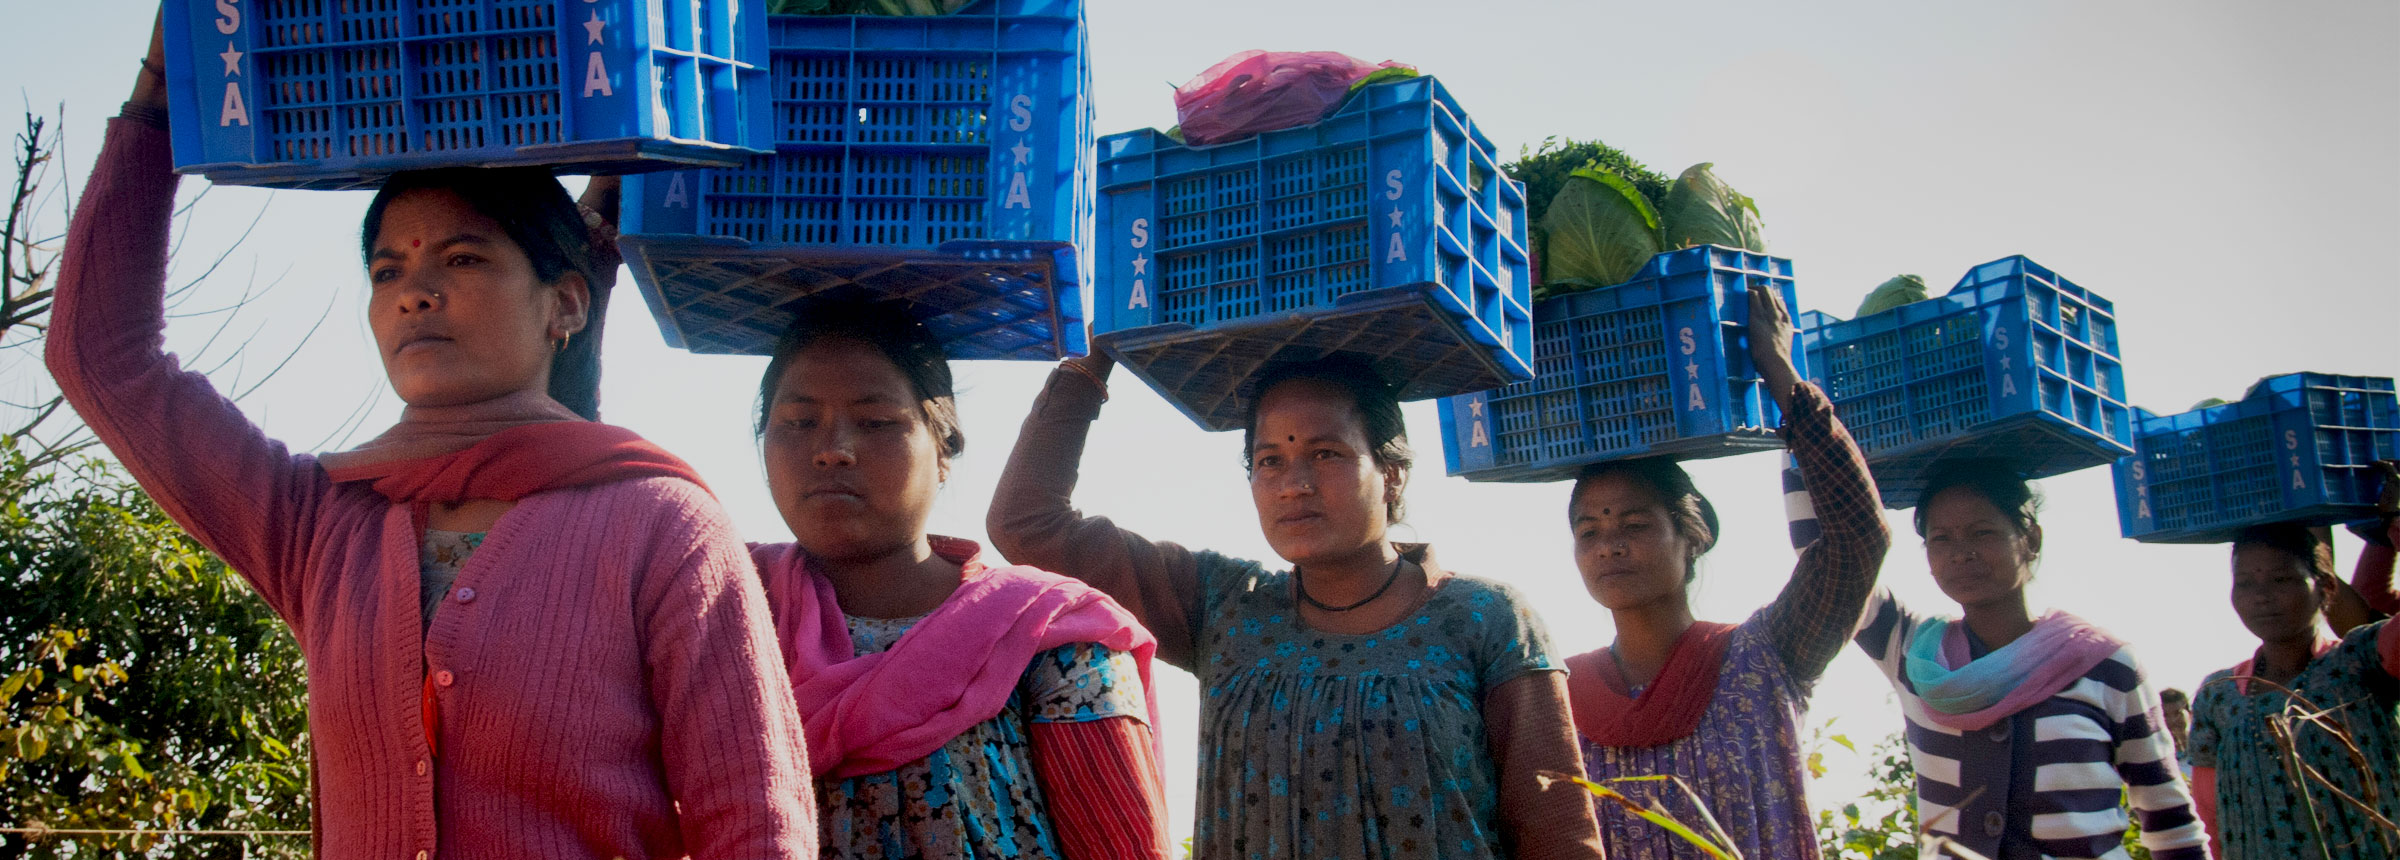 Nepali women carrying crates of vegetables